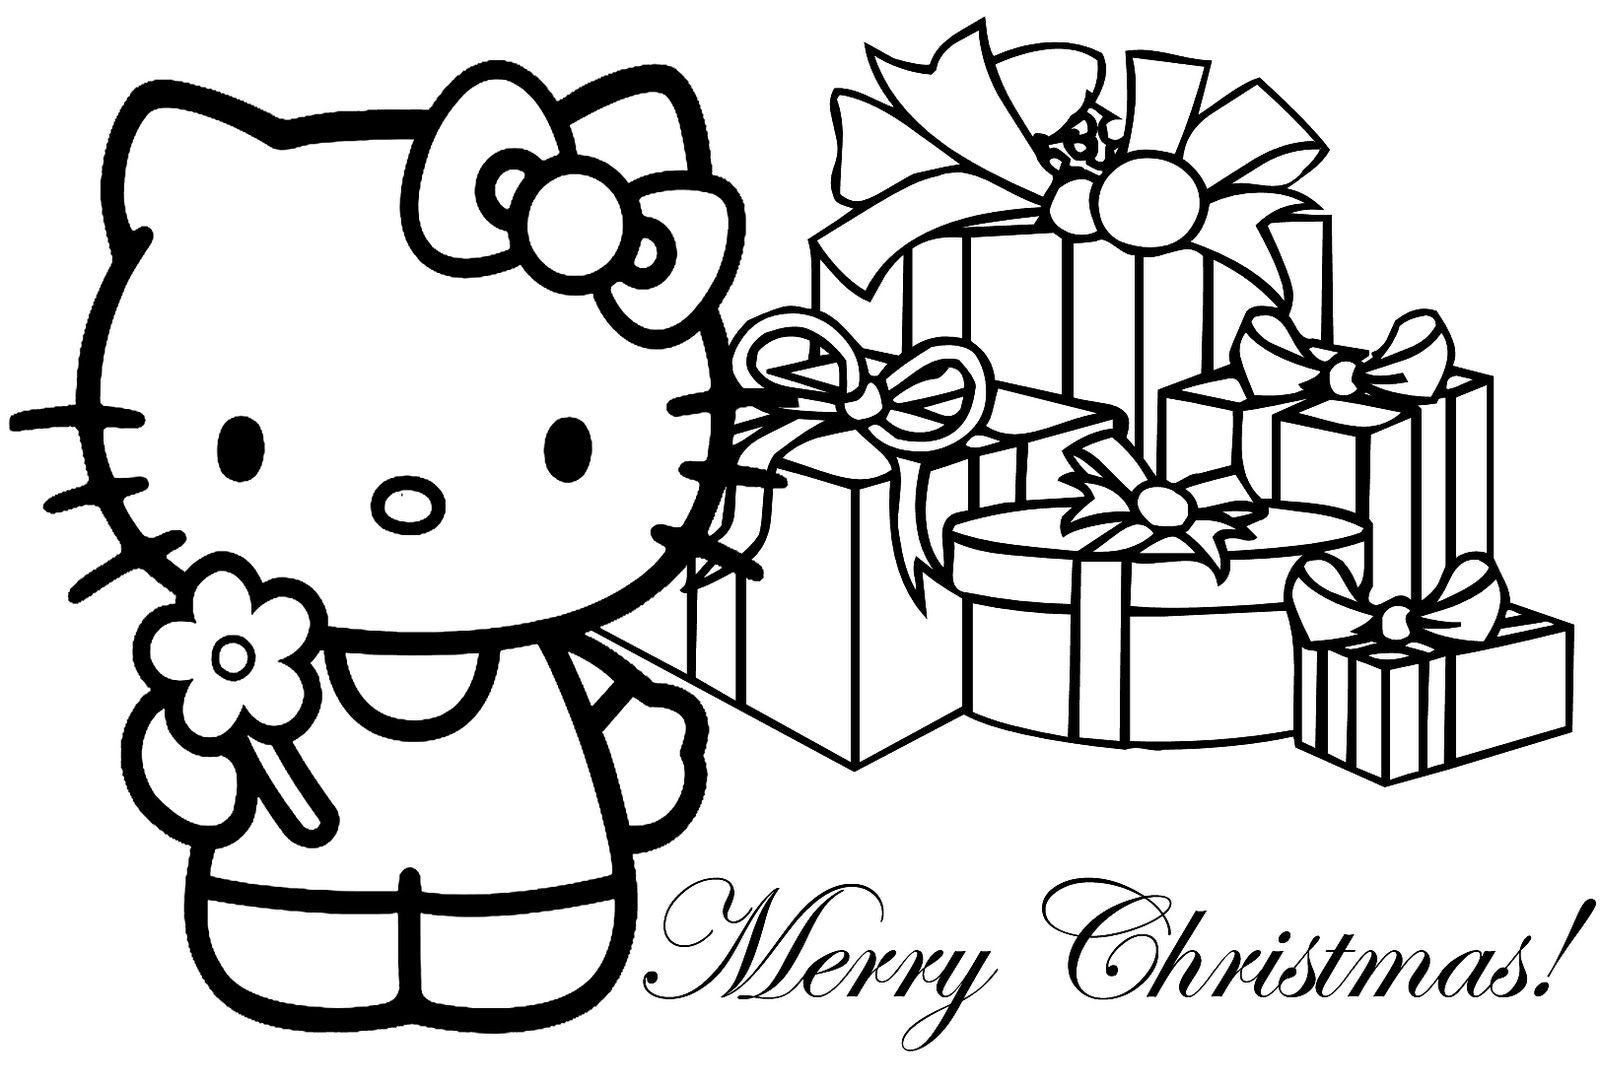 chirtmas coloring pages - photo#28